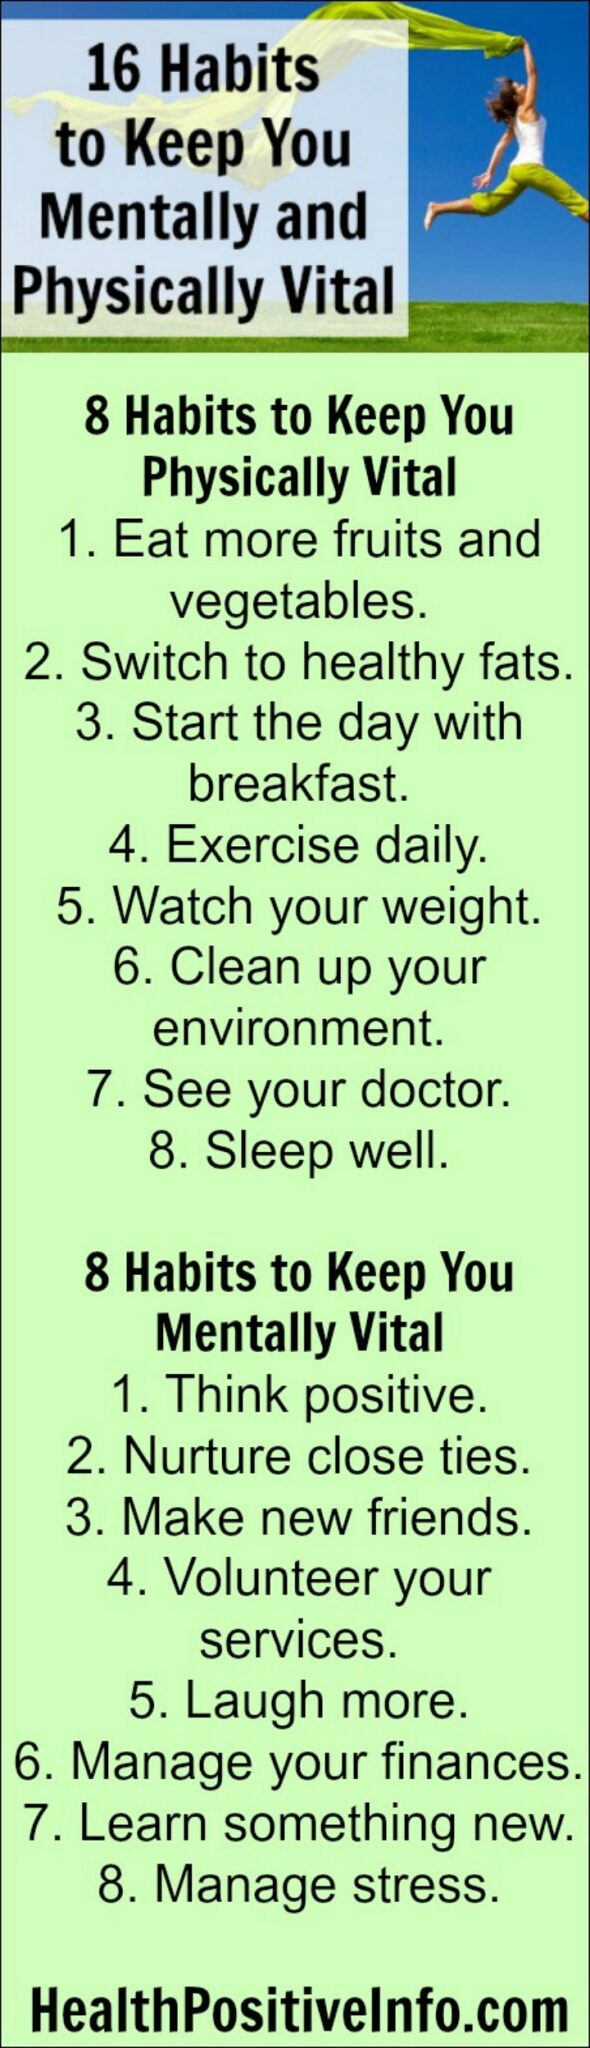 16 Habits to Keep You Mentally and Physically Healthy - https://healthpositiveinfo.com/16-habits-to-keep-you-mentally-and-physically-vital-even-as-you-age.html